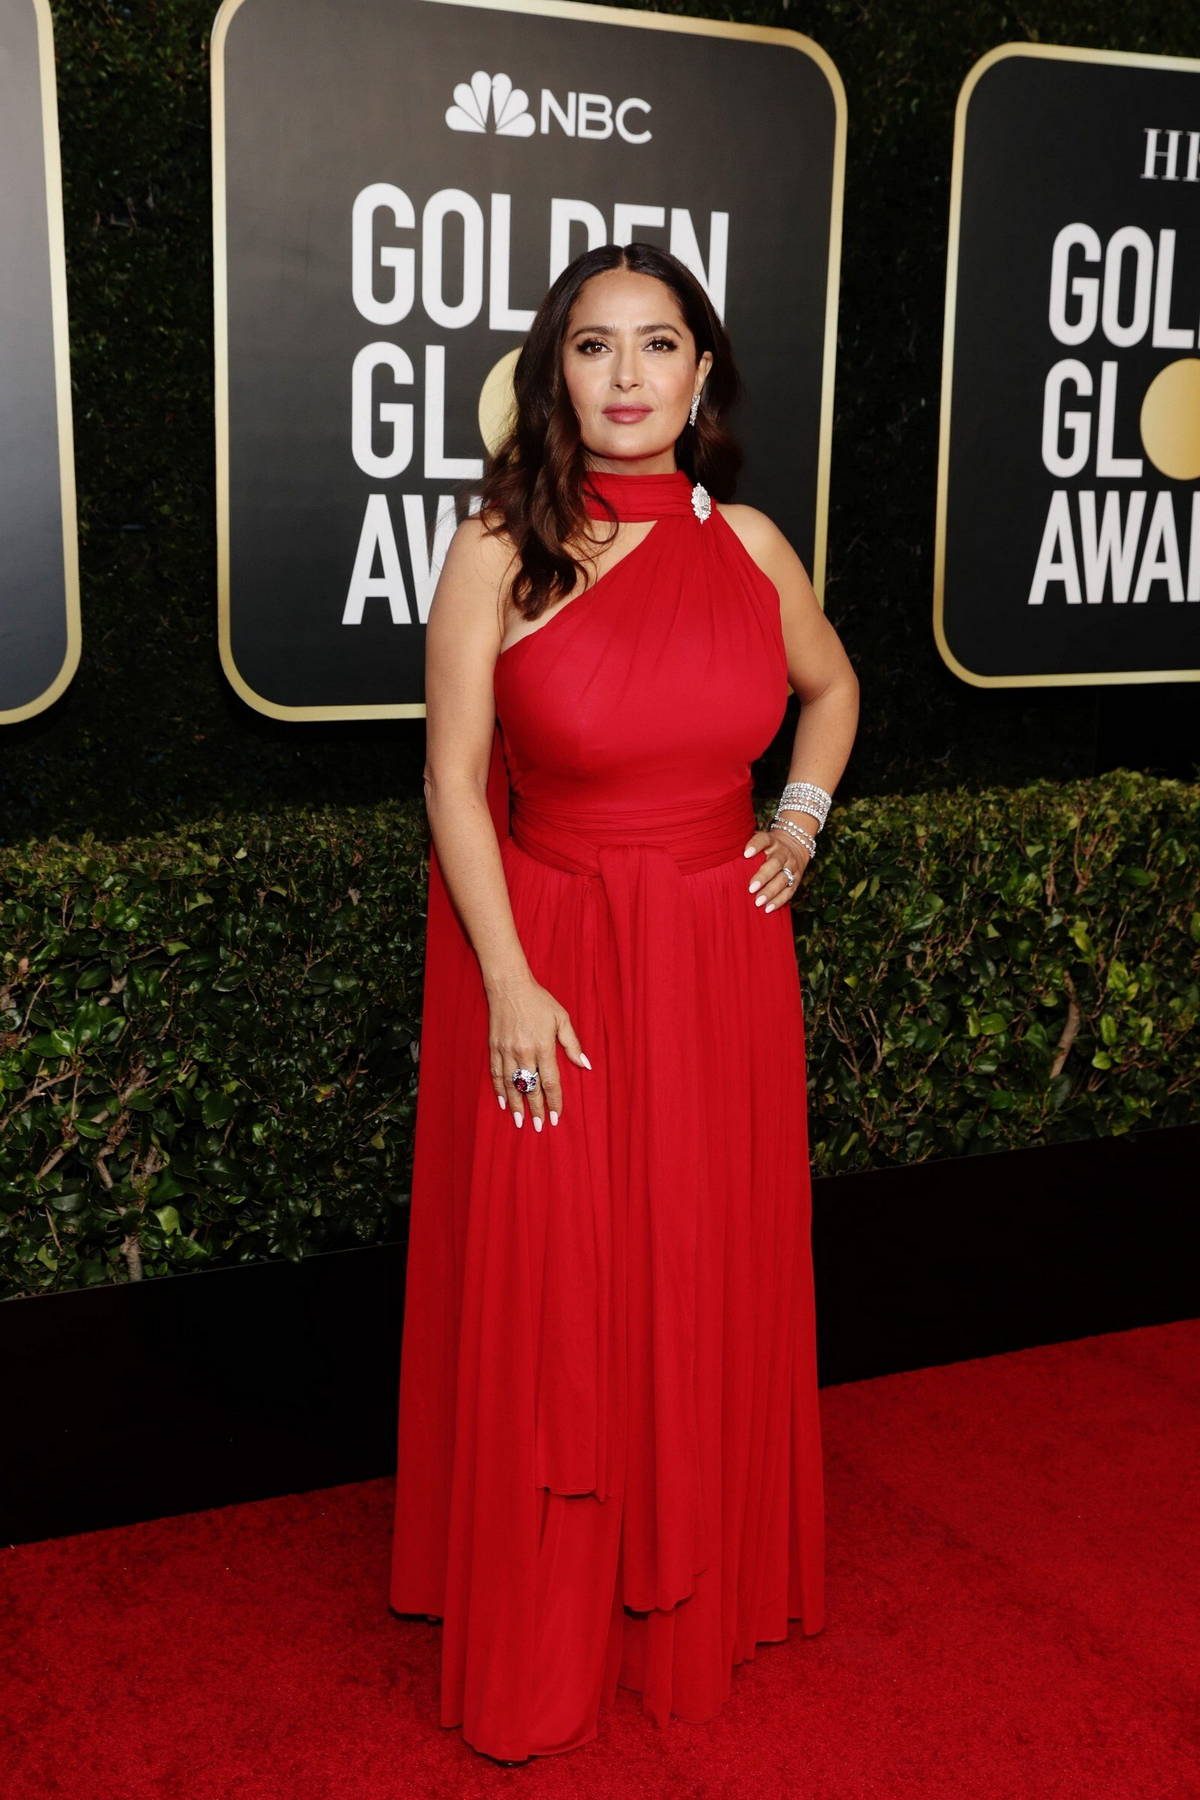 Salma Hayek attends the 78th Annual Golden Globe Awards at The Beverly Hilton in Beverly Hills, California